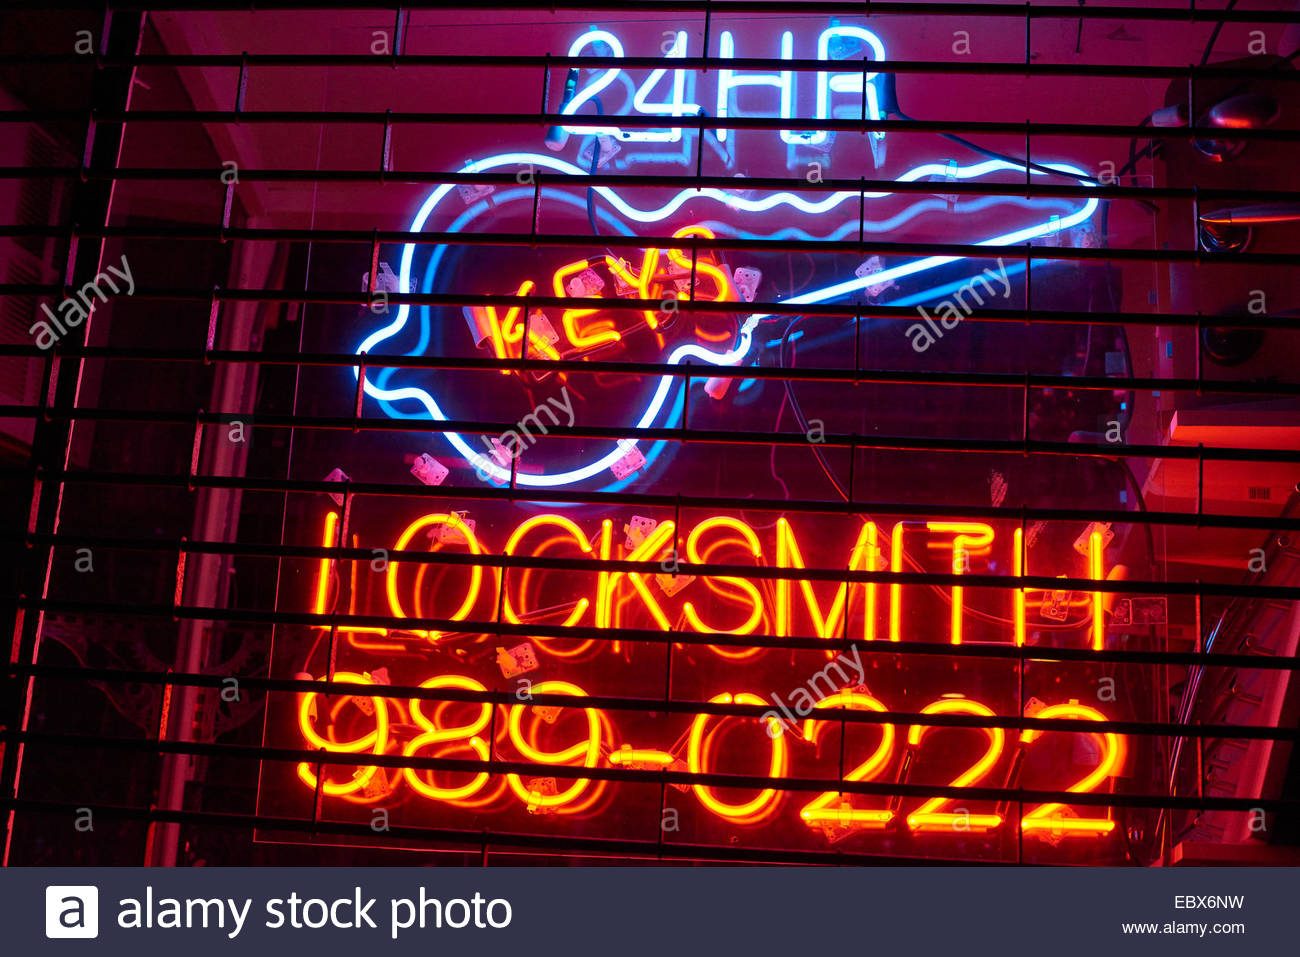 24 HR LOCKSMITH  NEON SIGN - Stock Image